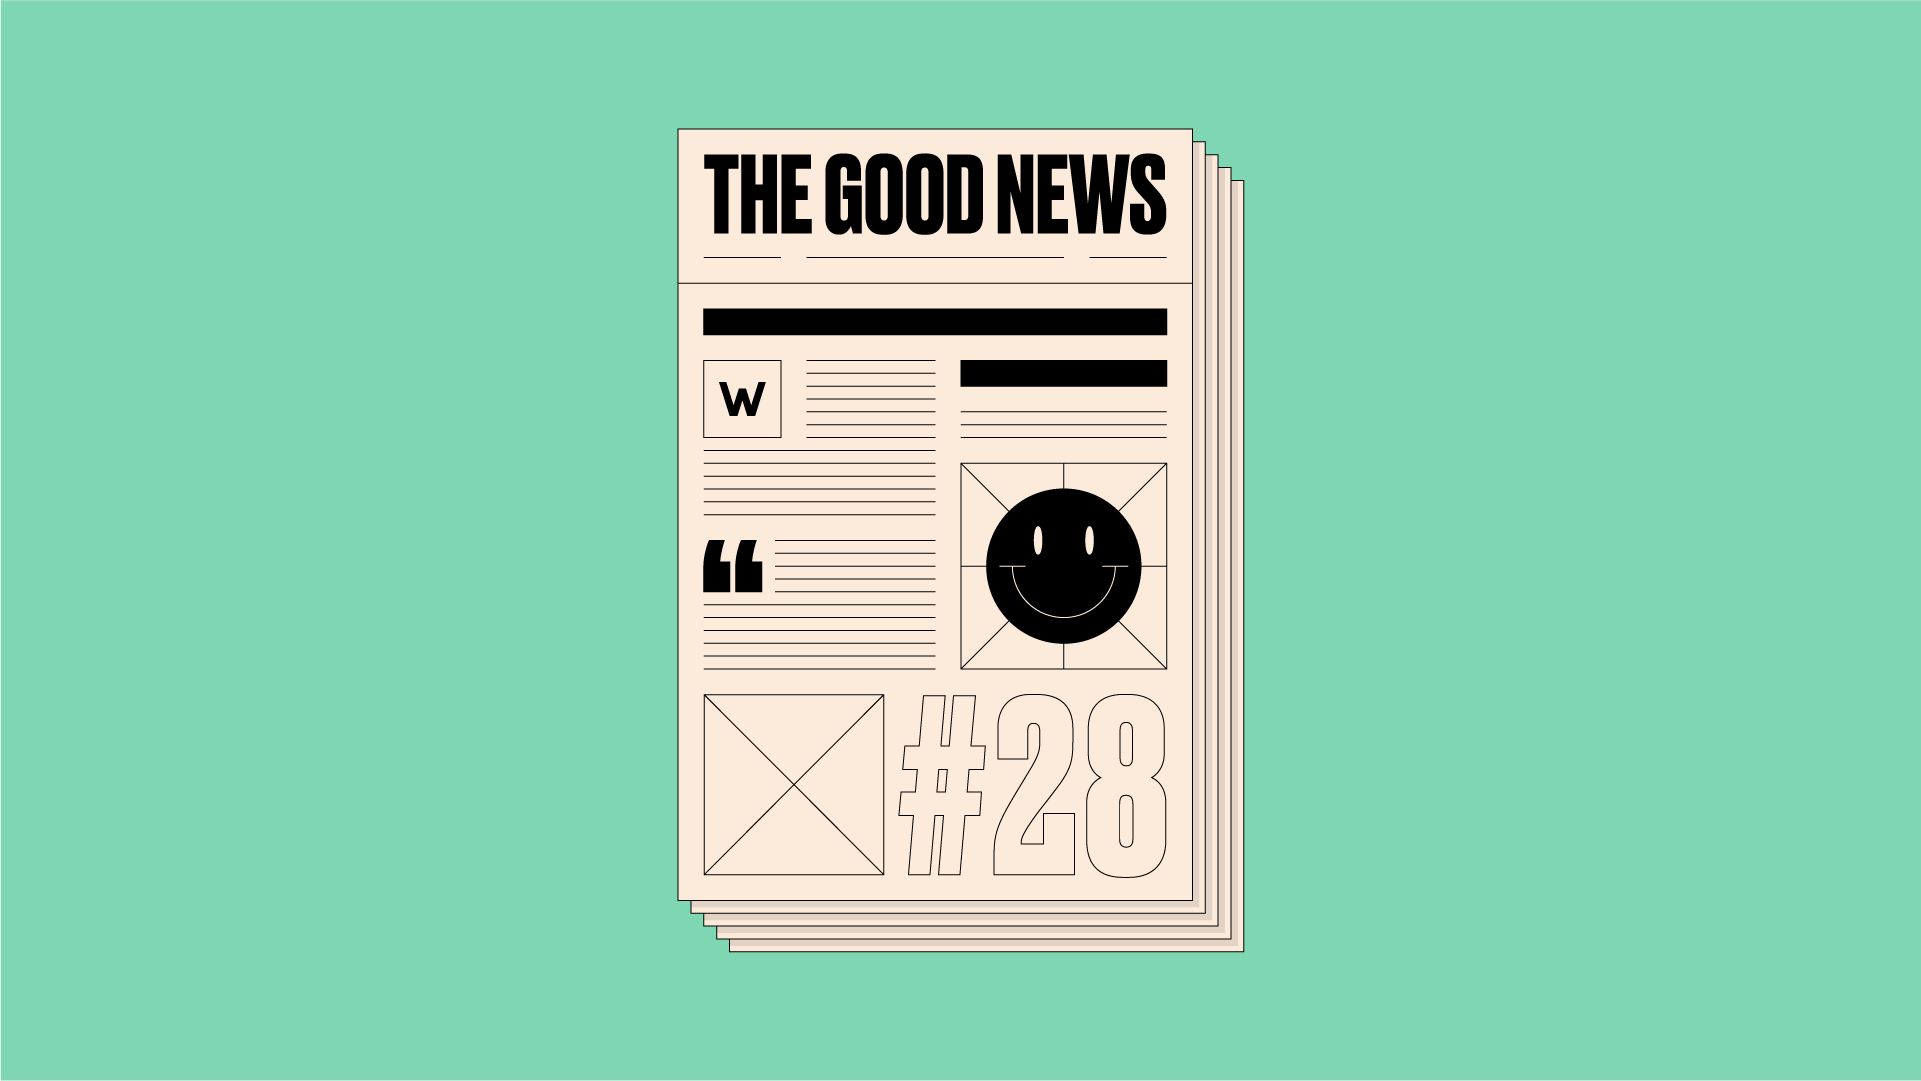 Green background with illustration of newspaper front page with 'The Good News #28' written on it.